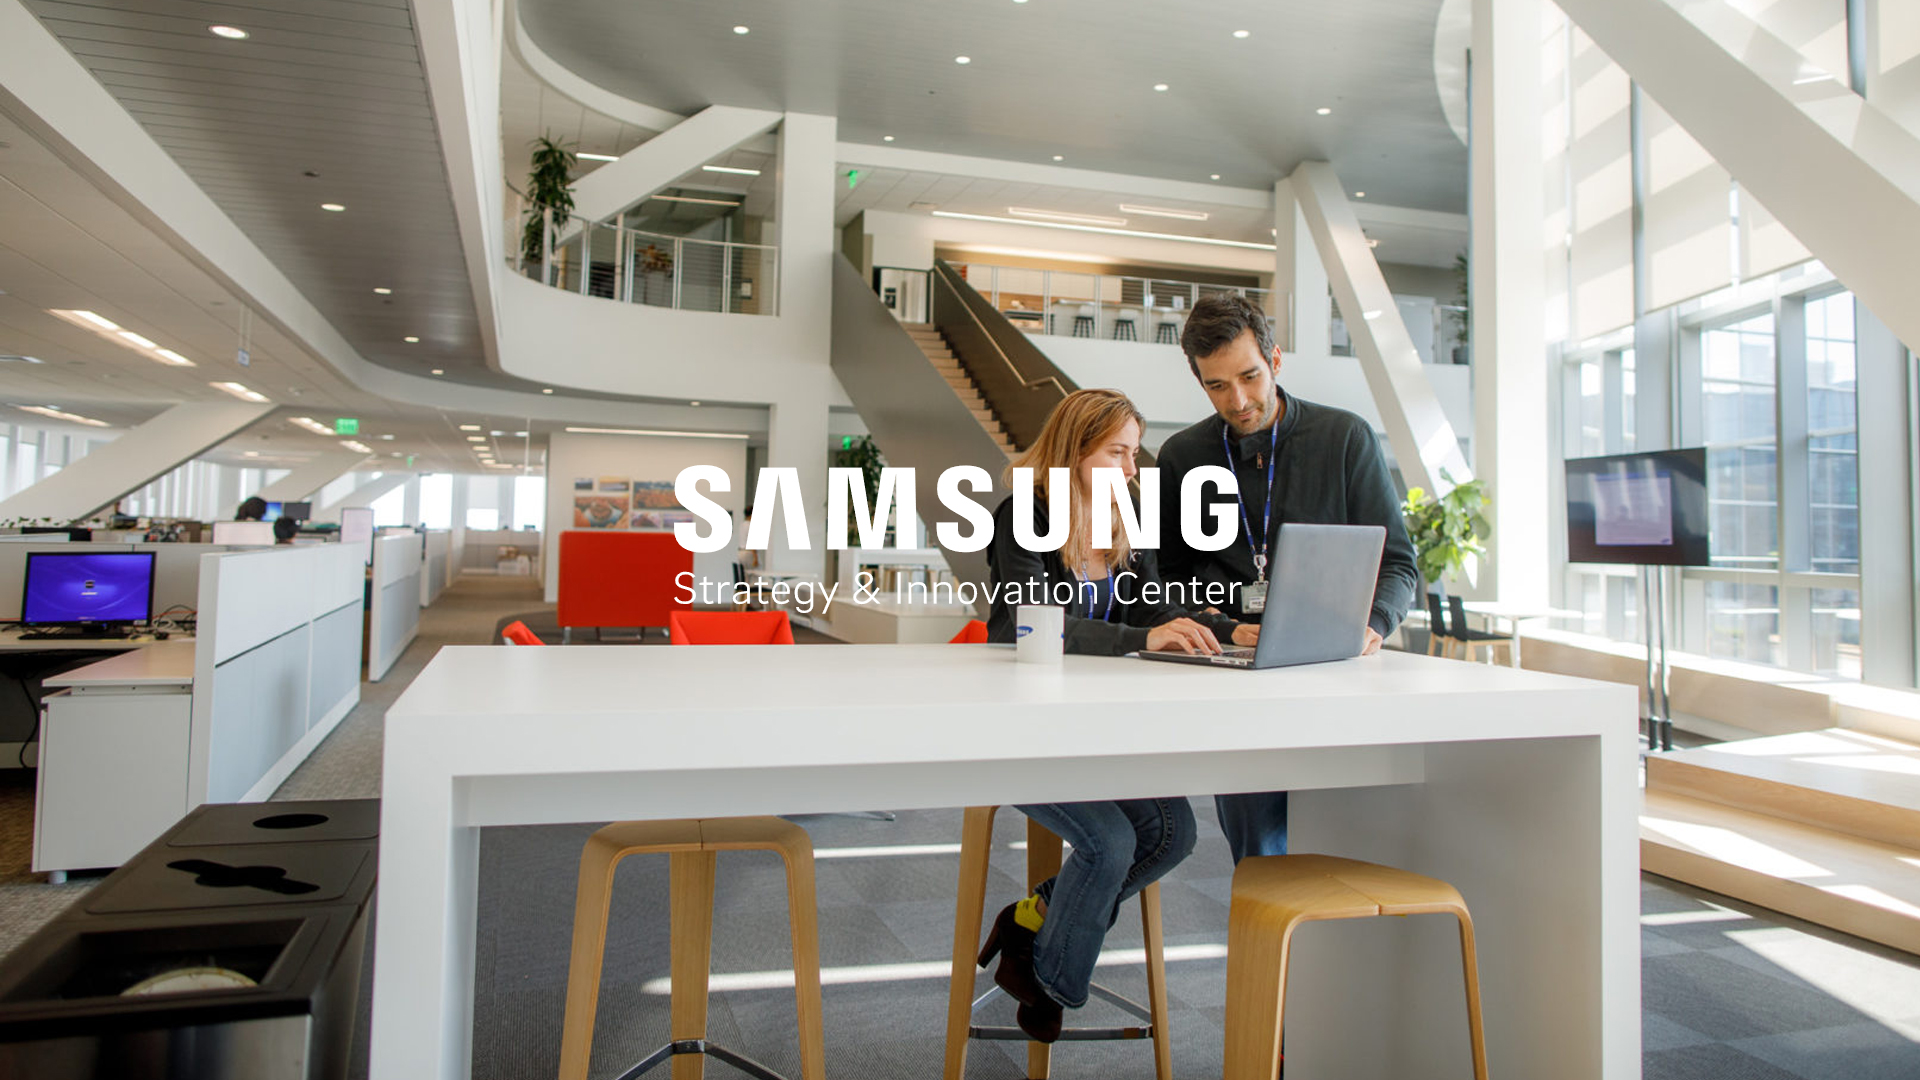 Samsung SIC Website Design Preview